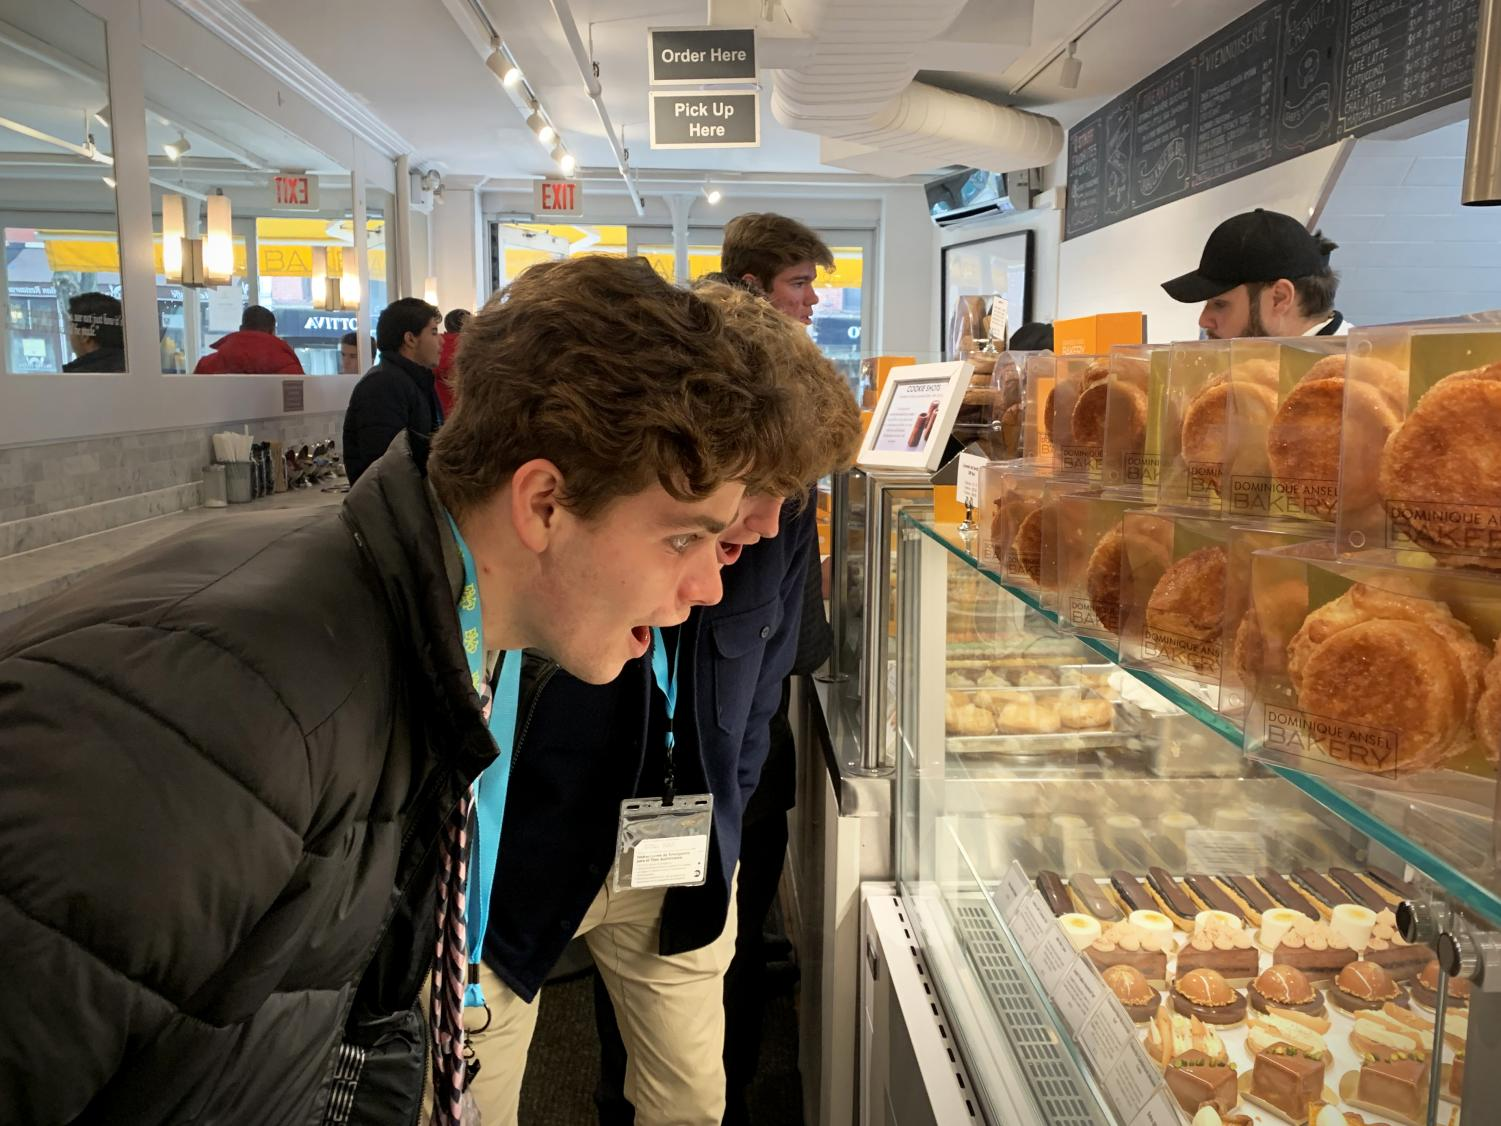 "Eyeing up breakfast options, seniors Nolan Barbre and Jake Juenger take in the sights and smells of Dominique Ansel Bakery during their first morning in New York City. Marketing students go on an annual trip to tour New York's major businesses and learn about marketing strategies. ""I got a piece of chocolate cake for breakfast, which was a pretty great start to the day,"" Barbre said. ""Everything in New York is so much fun and totally different than an everyday routine back at home."""